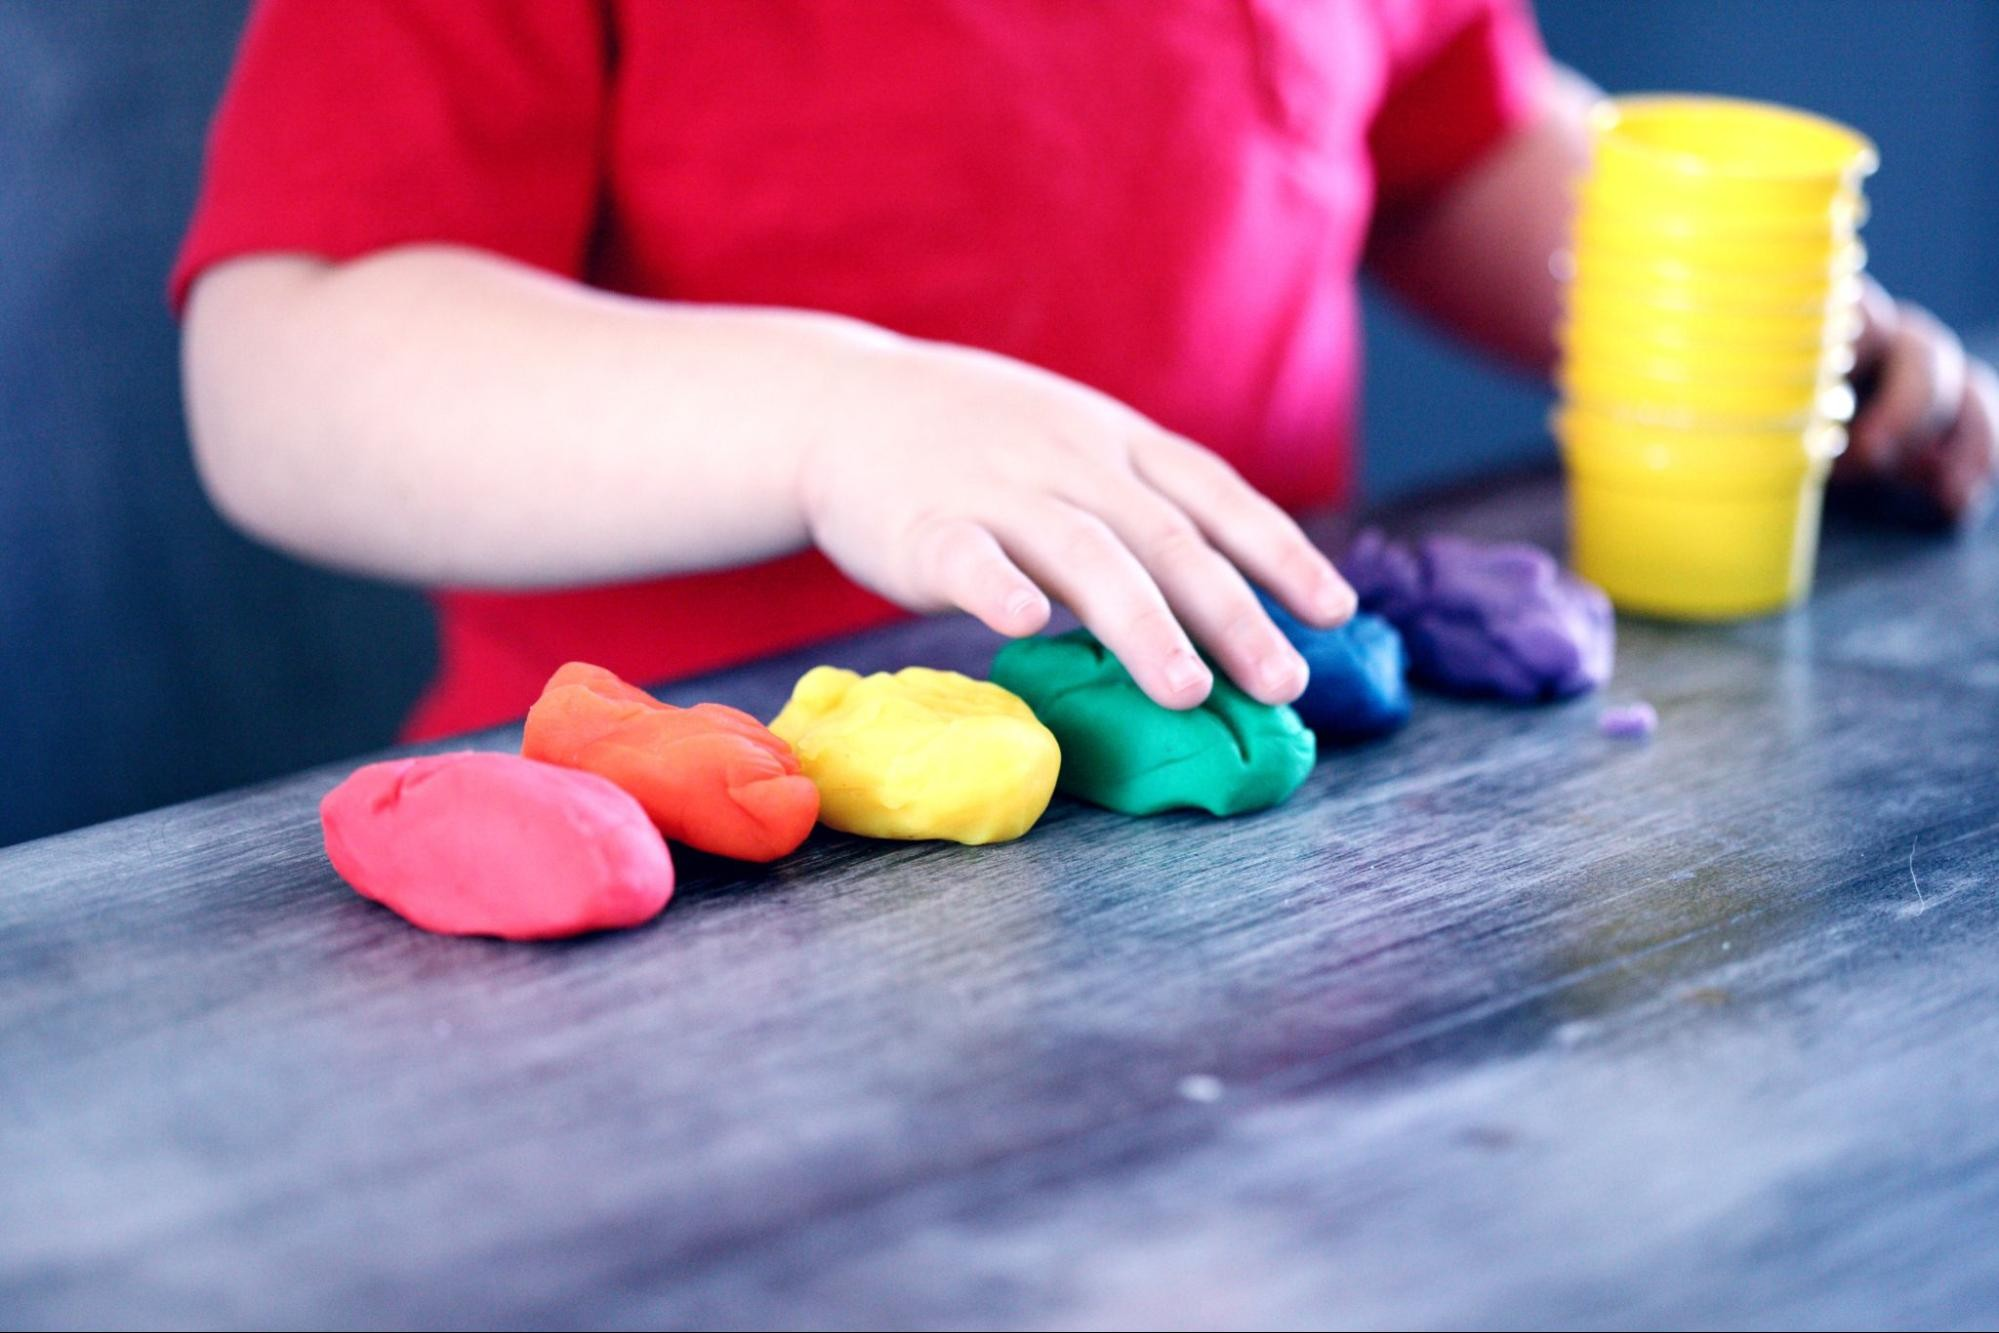 A student plays with colorful play dough.